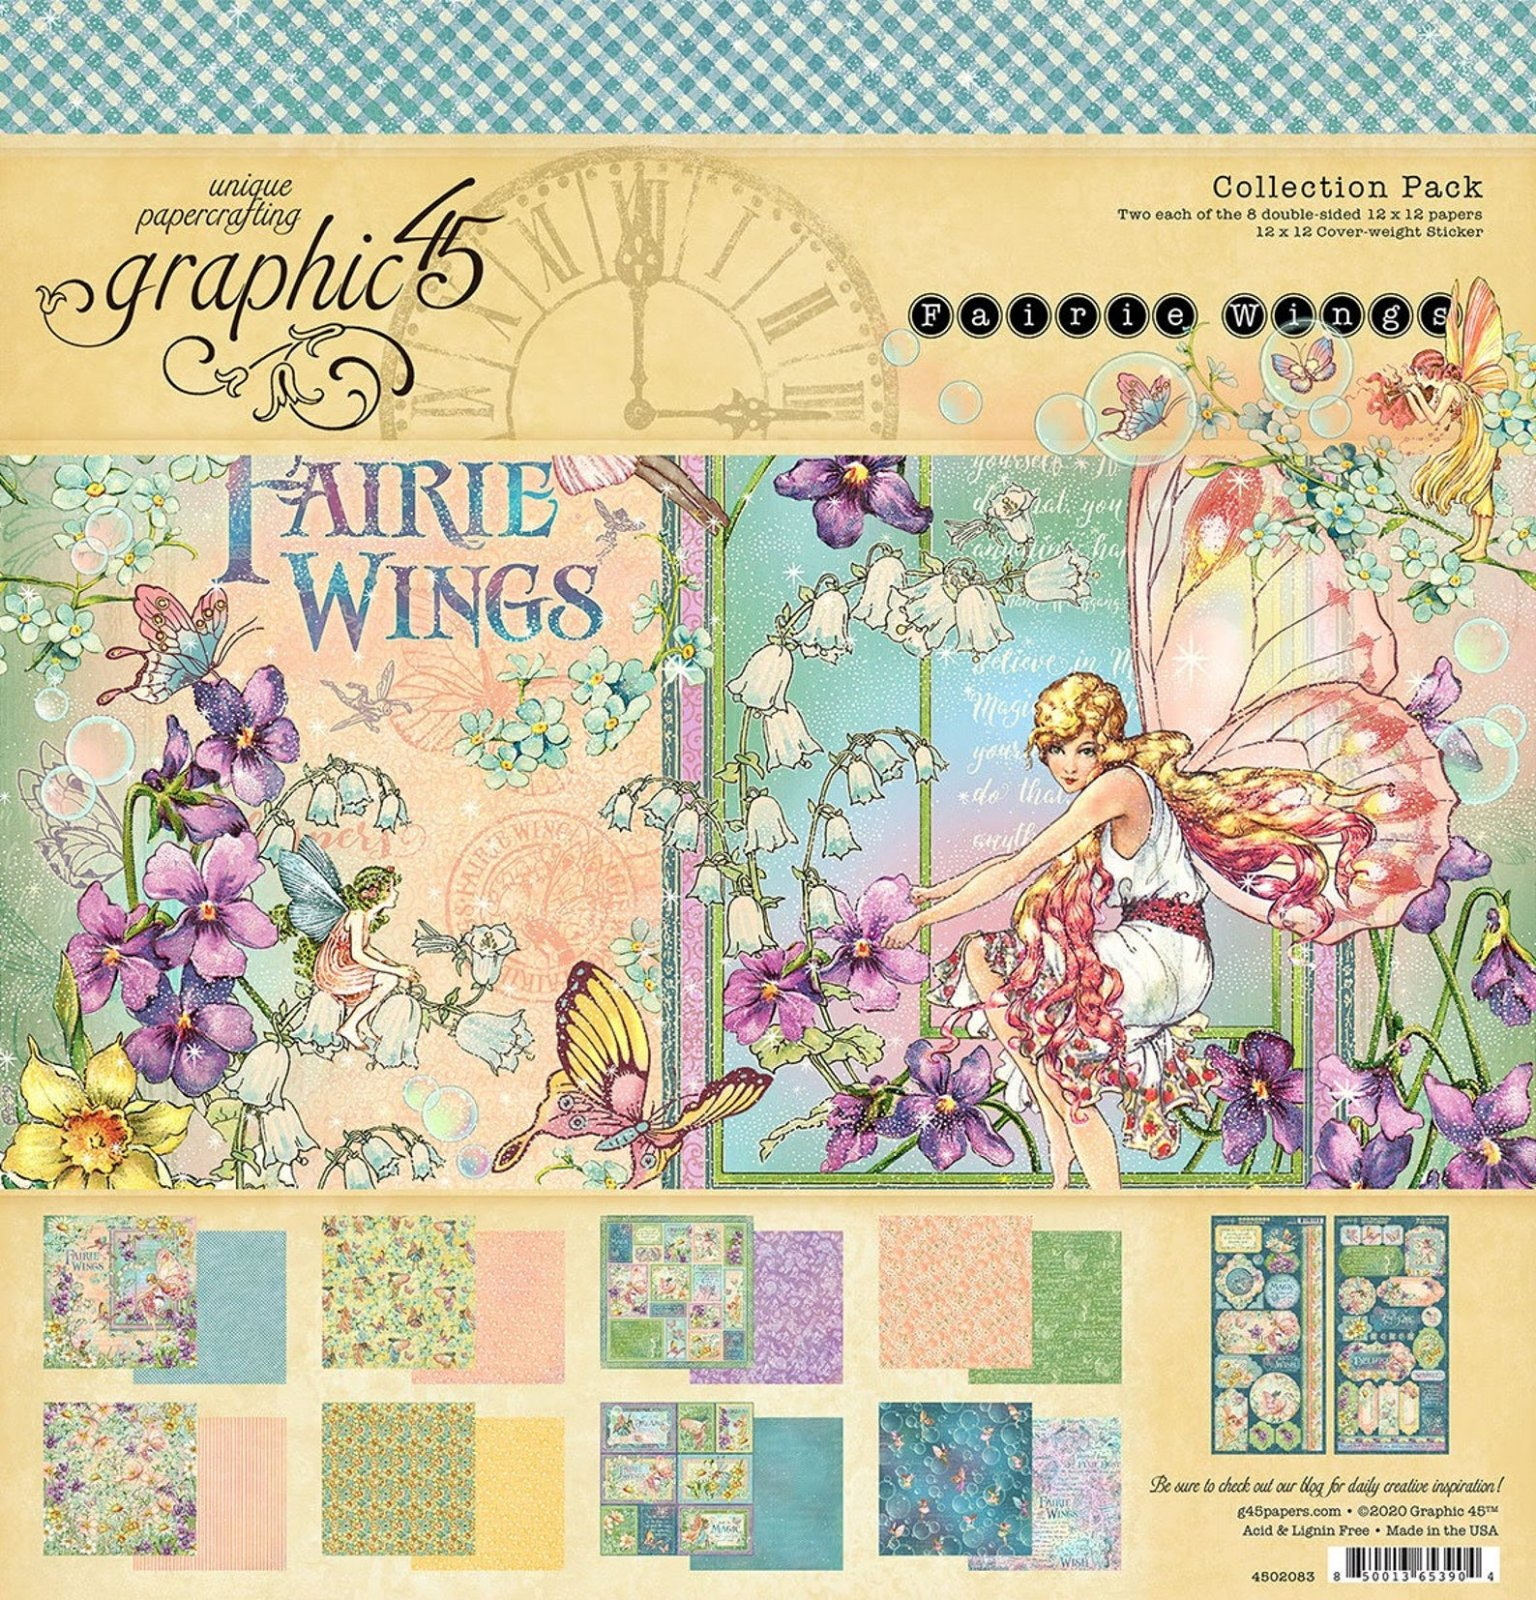 Graphic 45 - Fairie Wings 12x12 Collection Pack